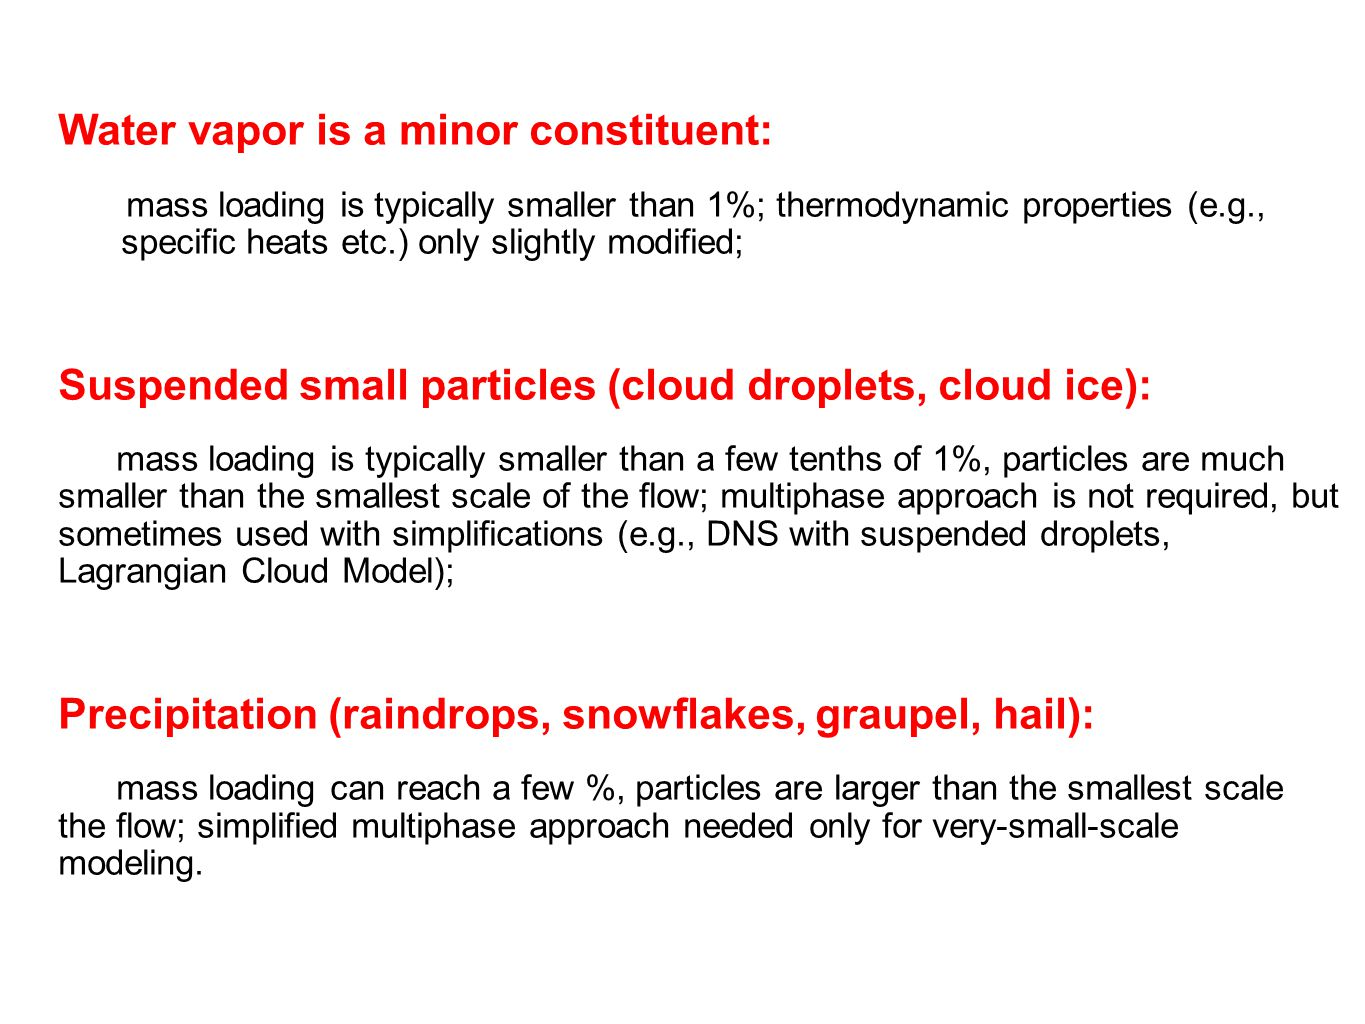 Water vapor is a minor constituent: mass loading is typically smaller than 1%; thermodynamic properties (e.g., specific heats etc.) only slightly modified; Suspended small particles (cloud droplets, cloud ice): mass loading is typically smaller than a few tenths of 1%, particles are much smaller than the smallest scale of the flow; multiphase approach is not required, but sometimes used with simplifications (e.g., DNS with suspended droplets, Lagrangian Cloud Model); Precipitation (raindrops, snowflakes, graupel, hail): mass loading can reach a few %, particles are larger than the smallest scale the flow; simplified multiphase approach needed only for very-small-scale modeling.